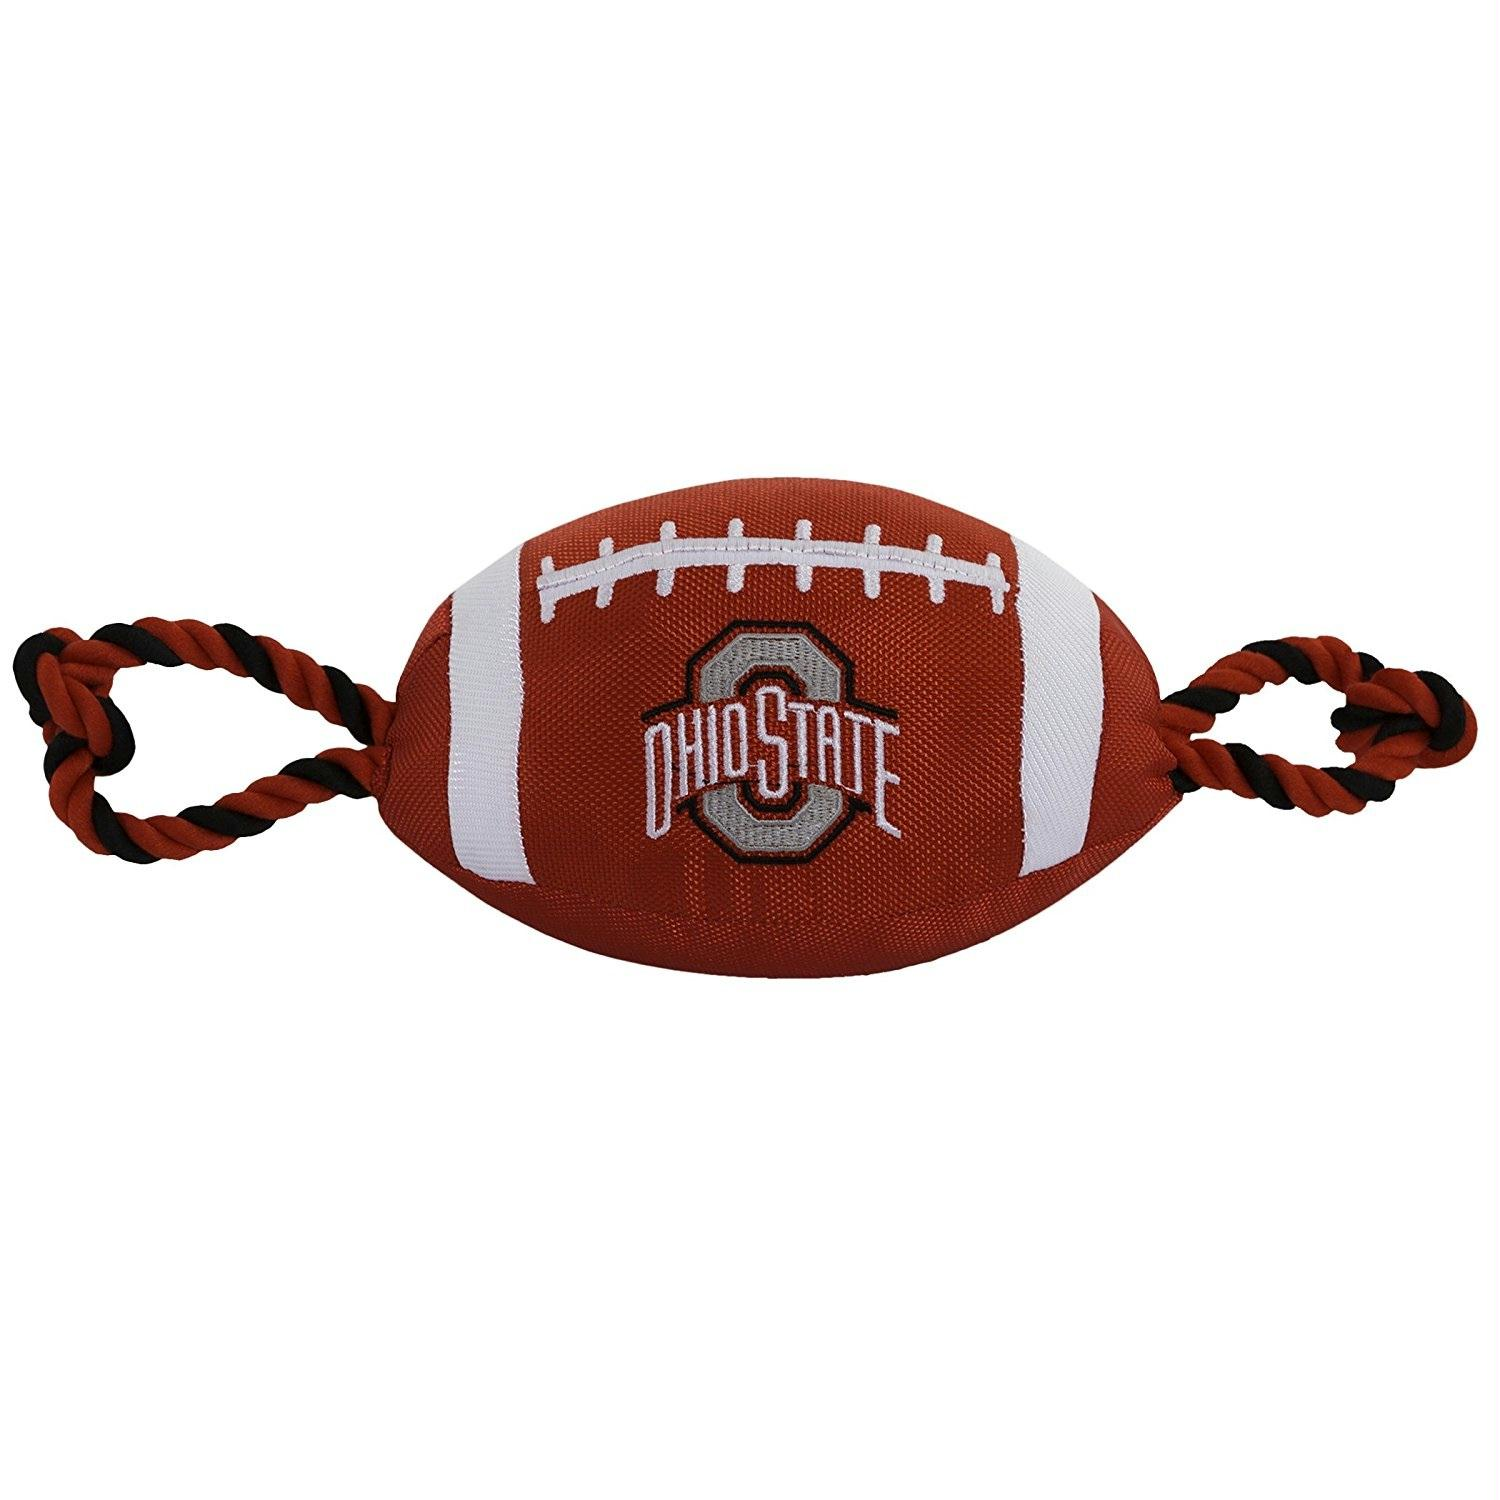 Ohio State Buckeyes Dog Nylon Football Dog Toy